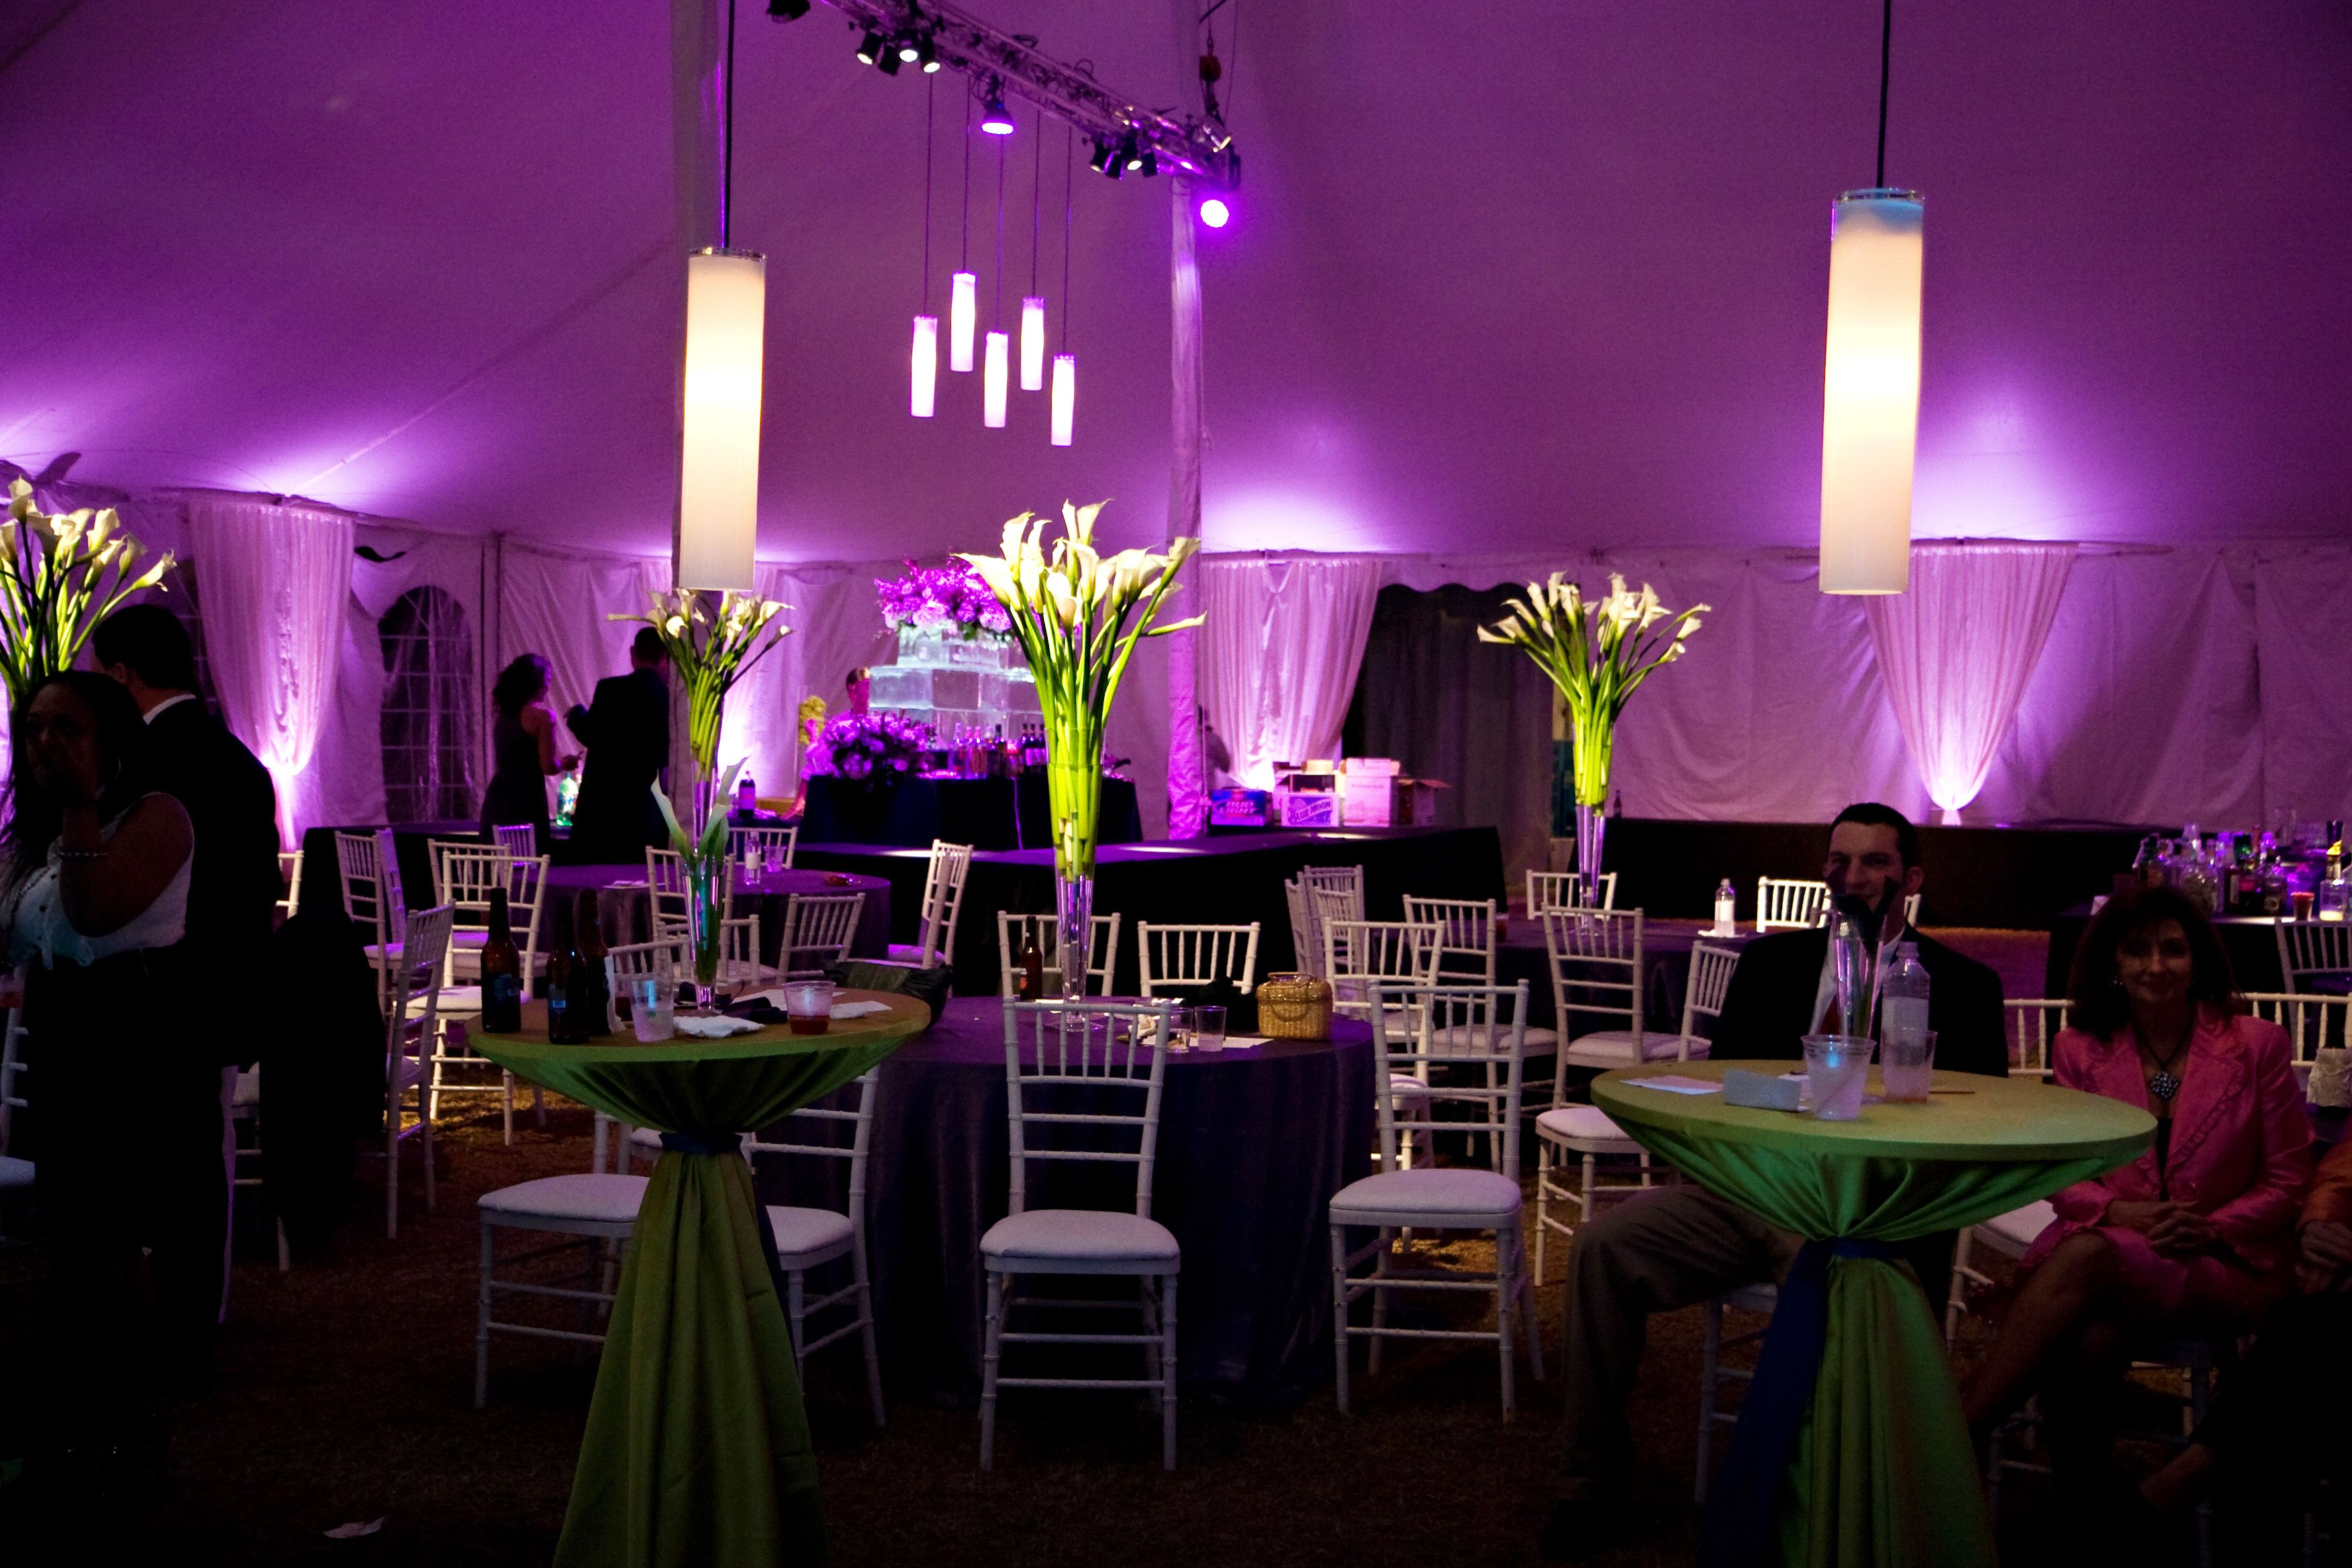 my summer wedding colors! :) love the lighting! love the calla